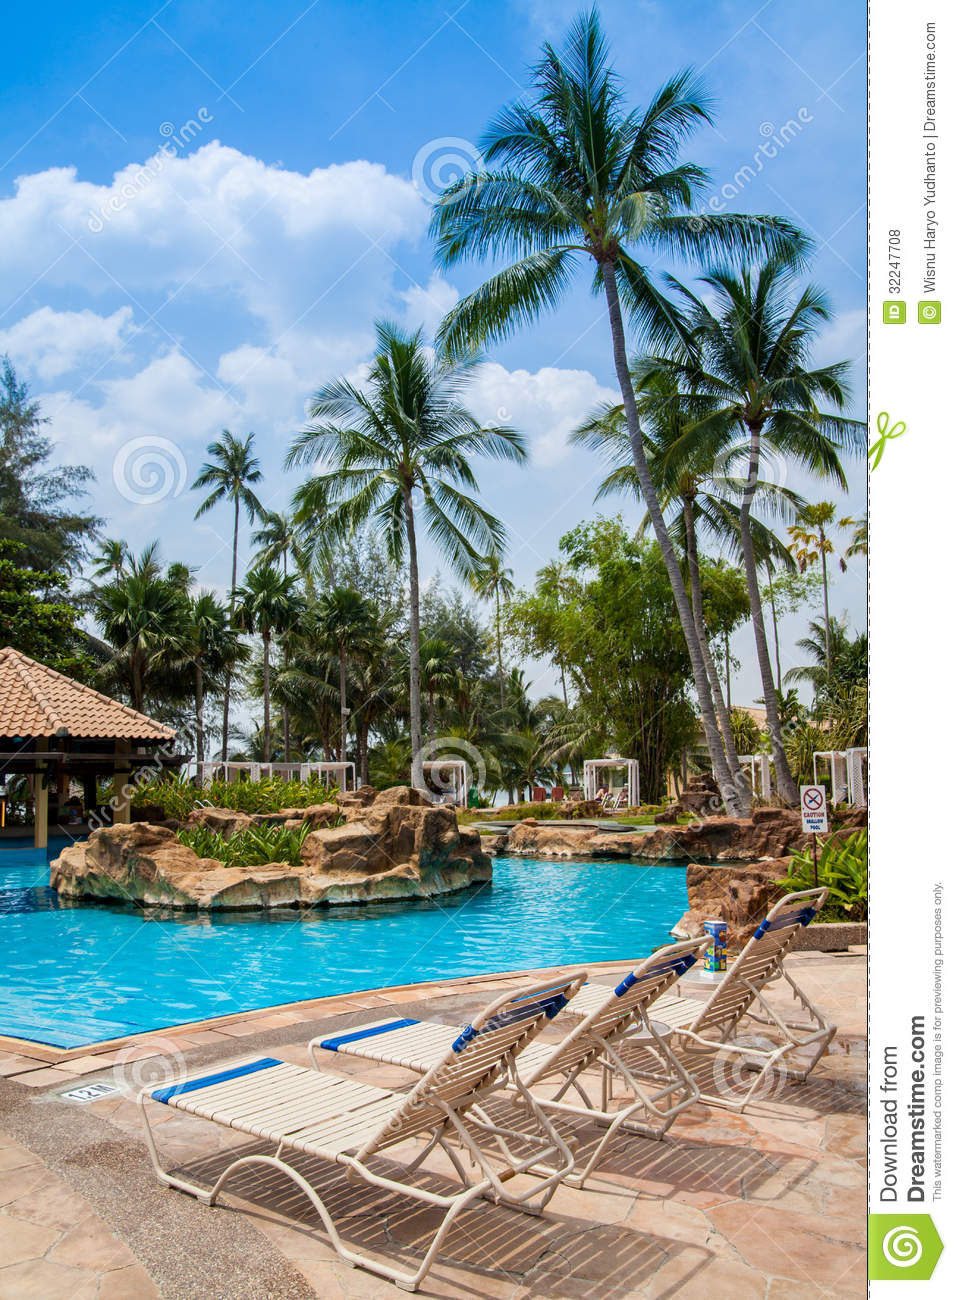 Swimming Pool Royalty Free Stock Photos Image 32247708